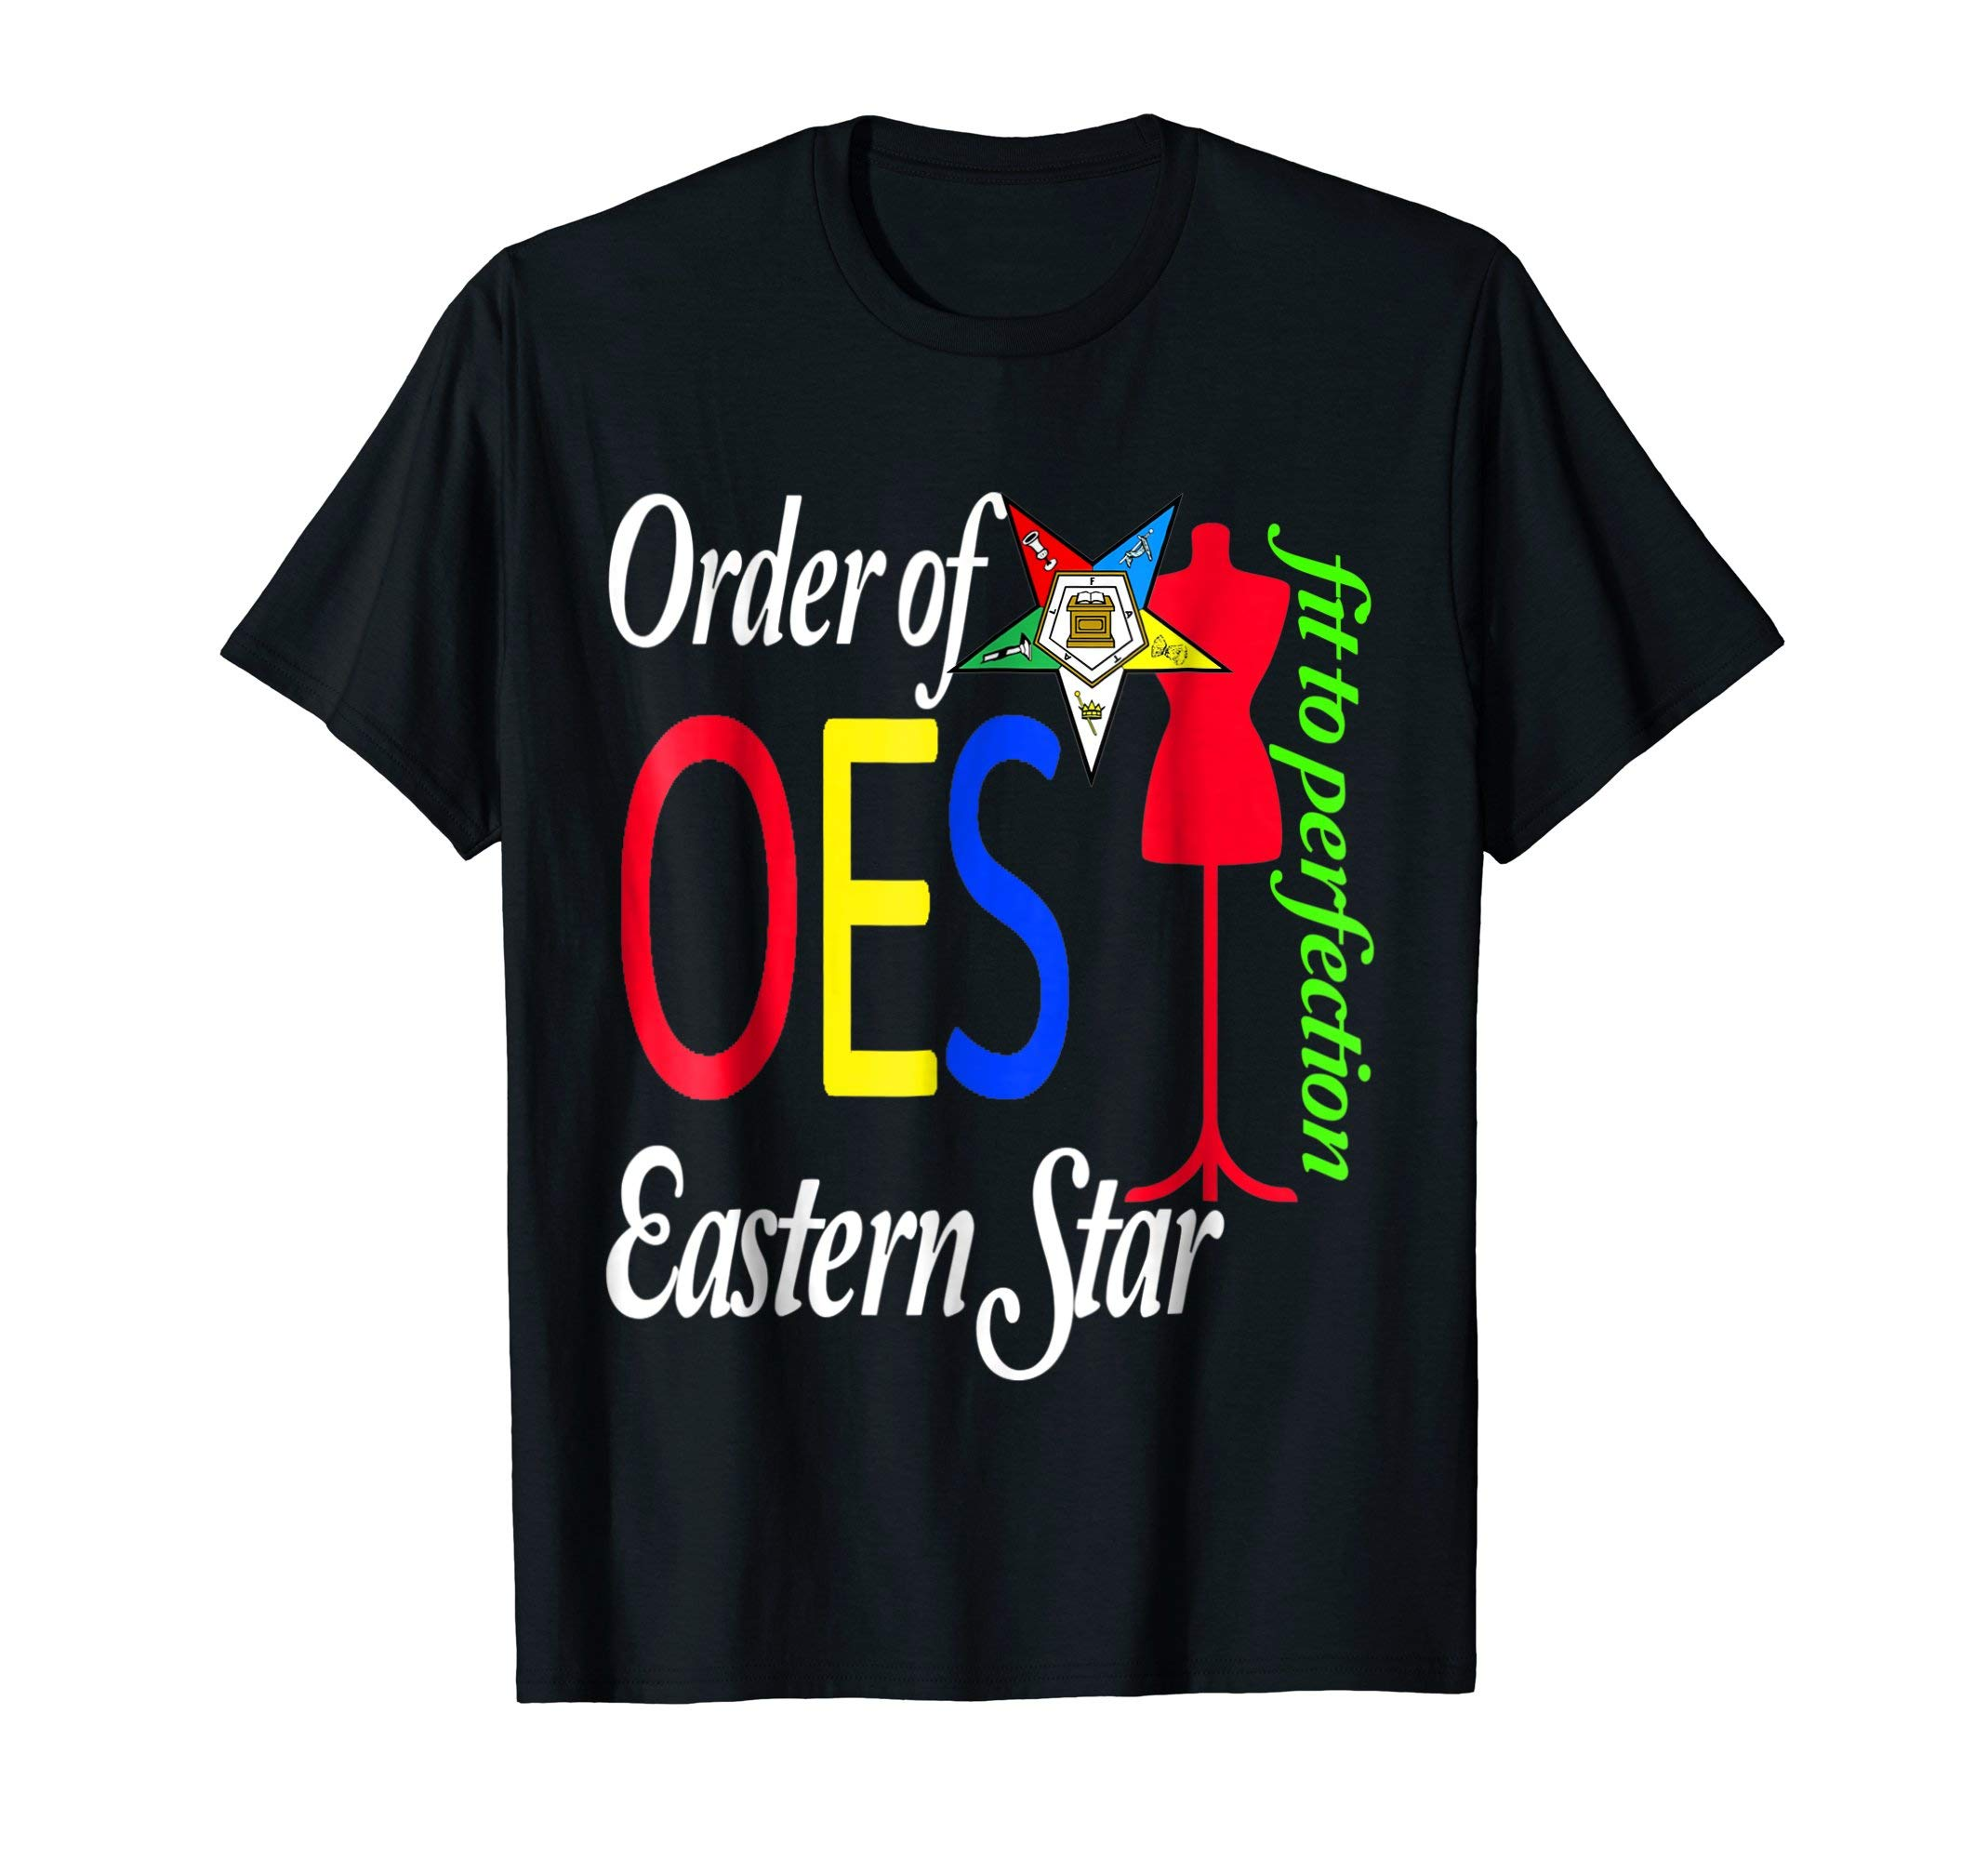 OES Style T-Shirt Order Of The Eastern Star Freemason